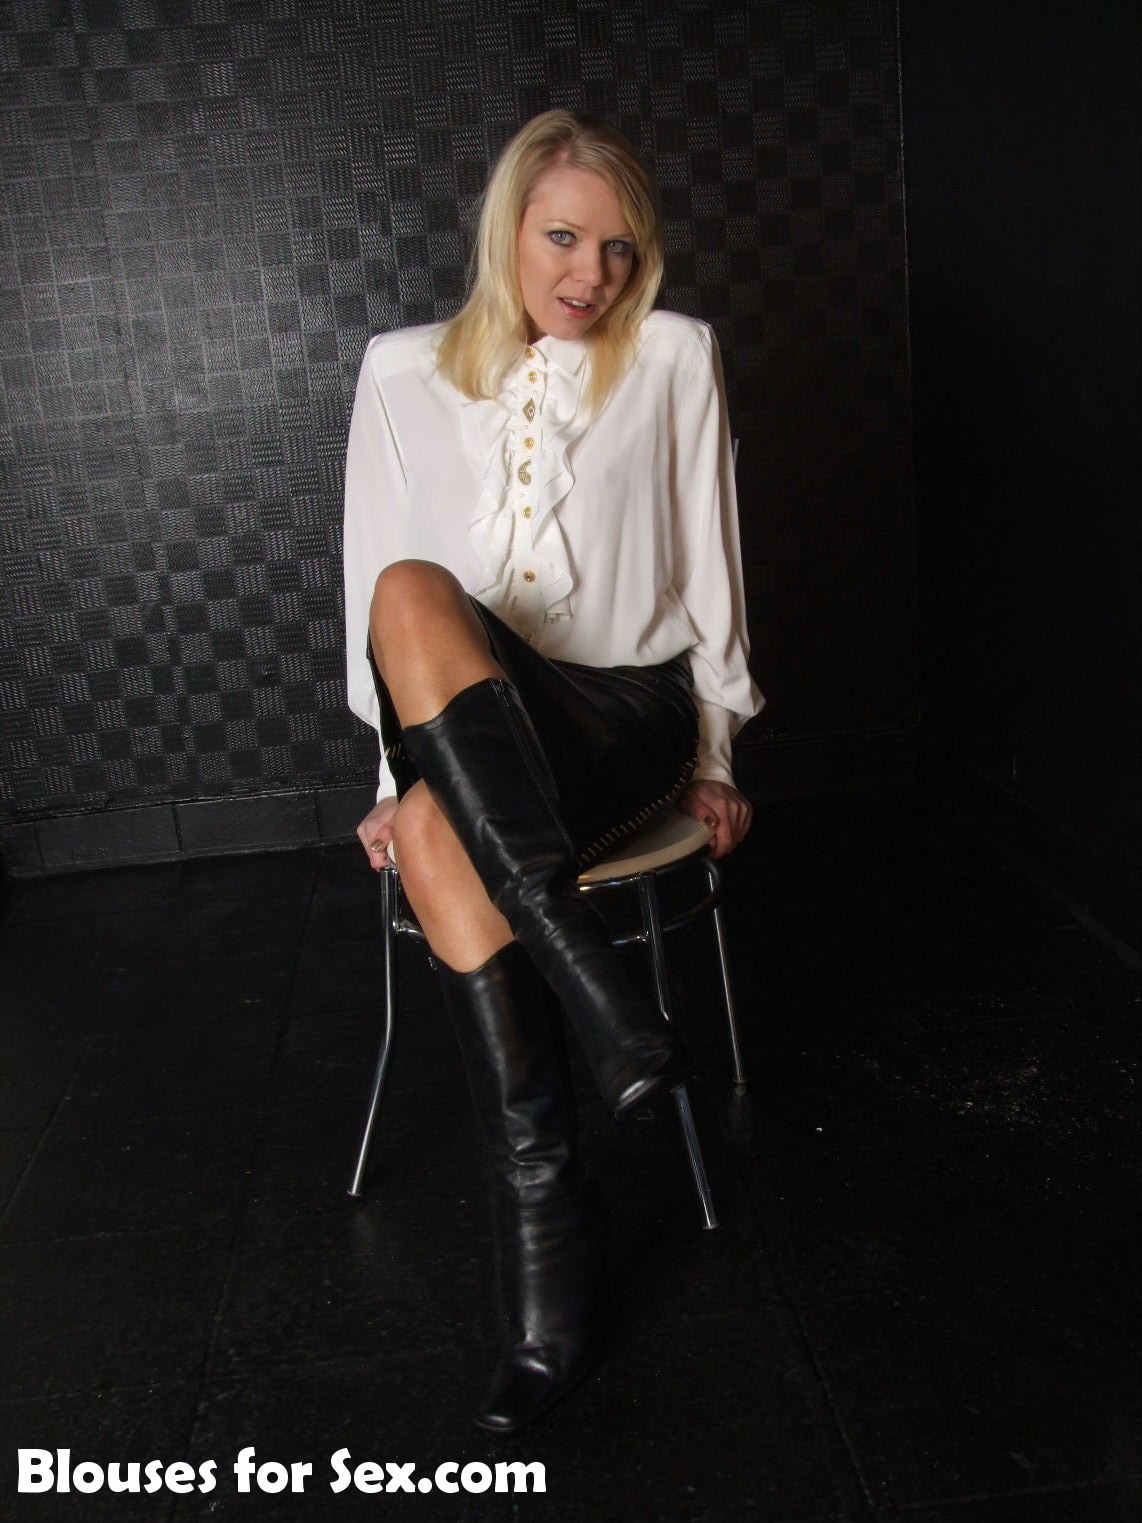 Blouses and Boots